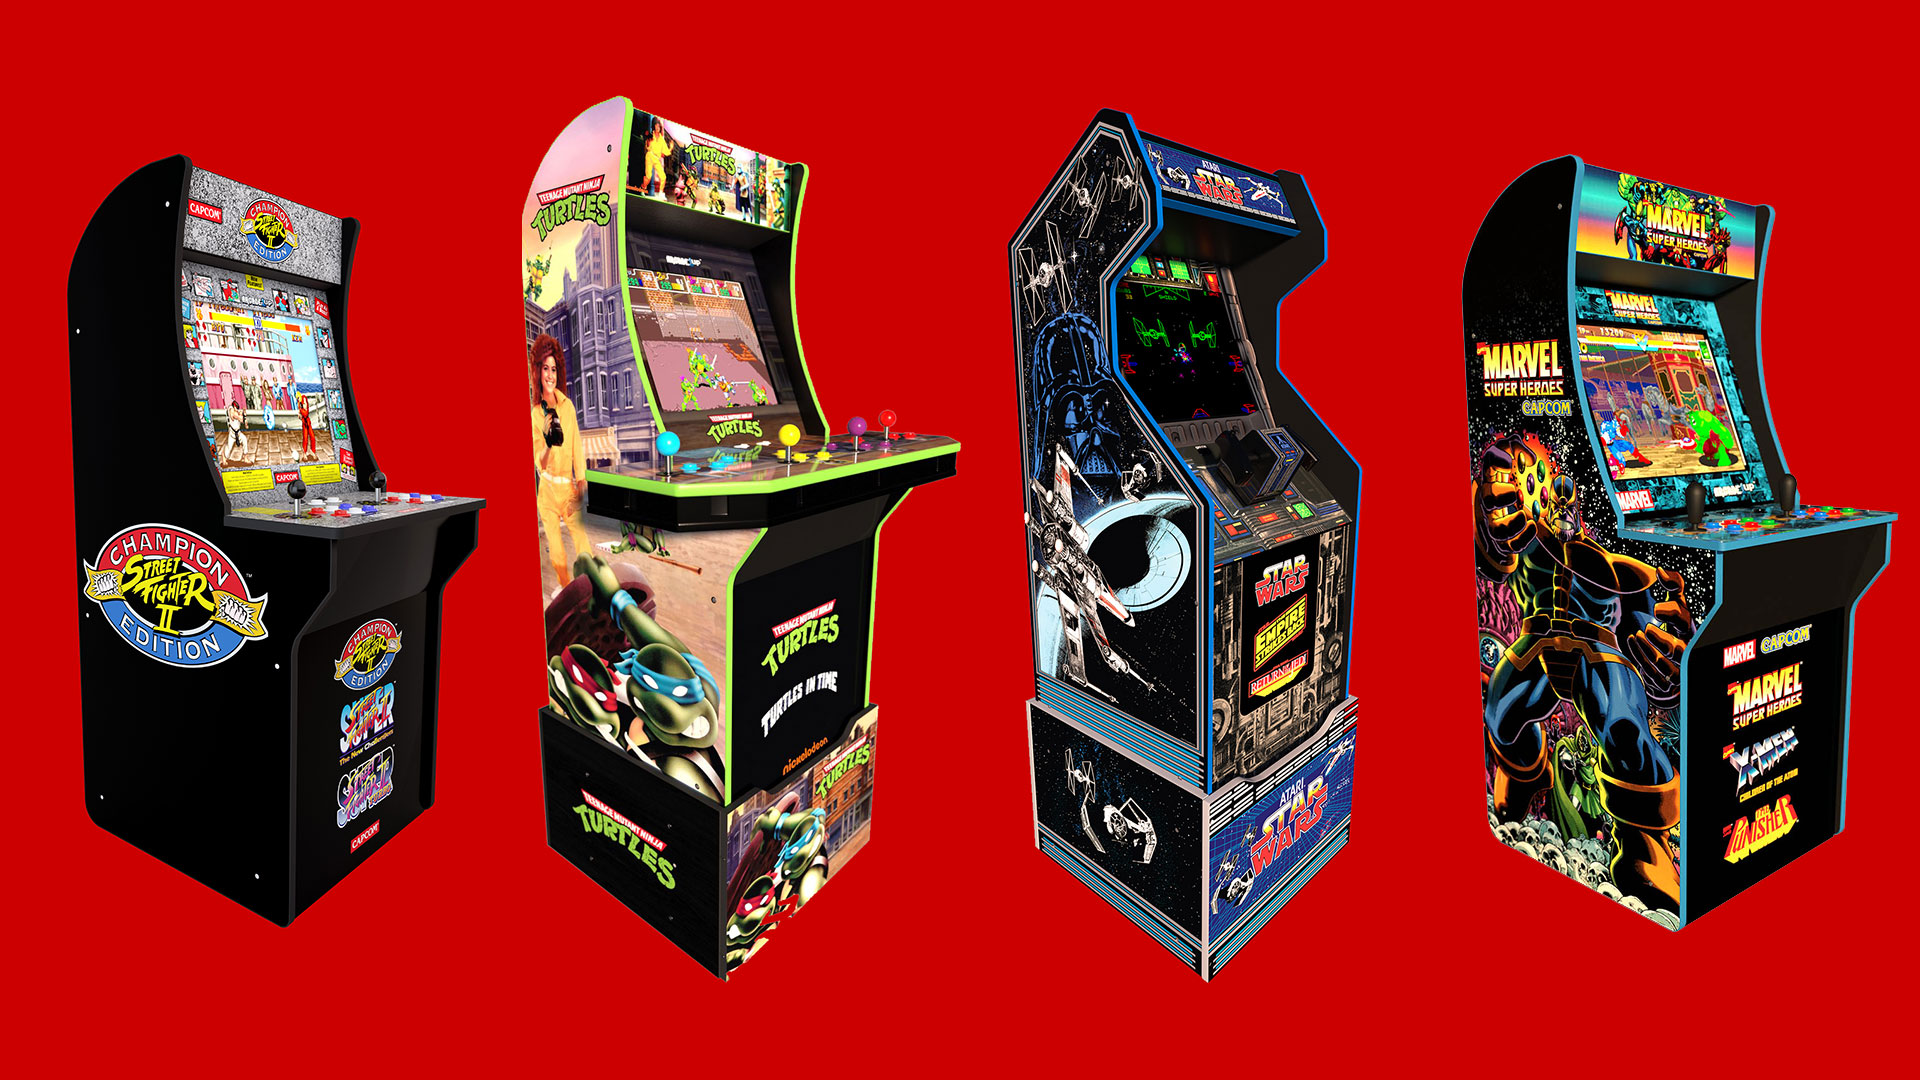 Arcade1up Arcade Cabinet Cyber Monday Deals Up To 150 Off Updated